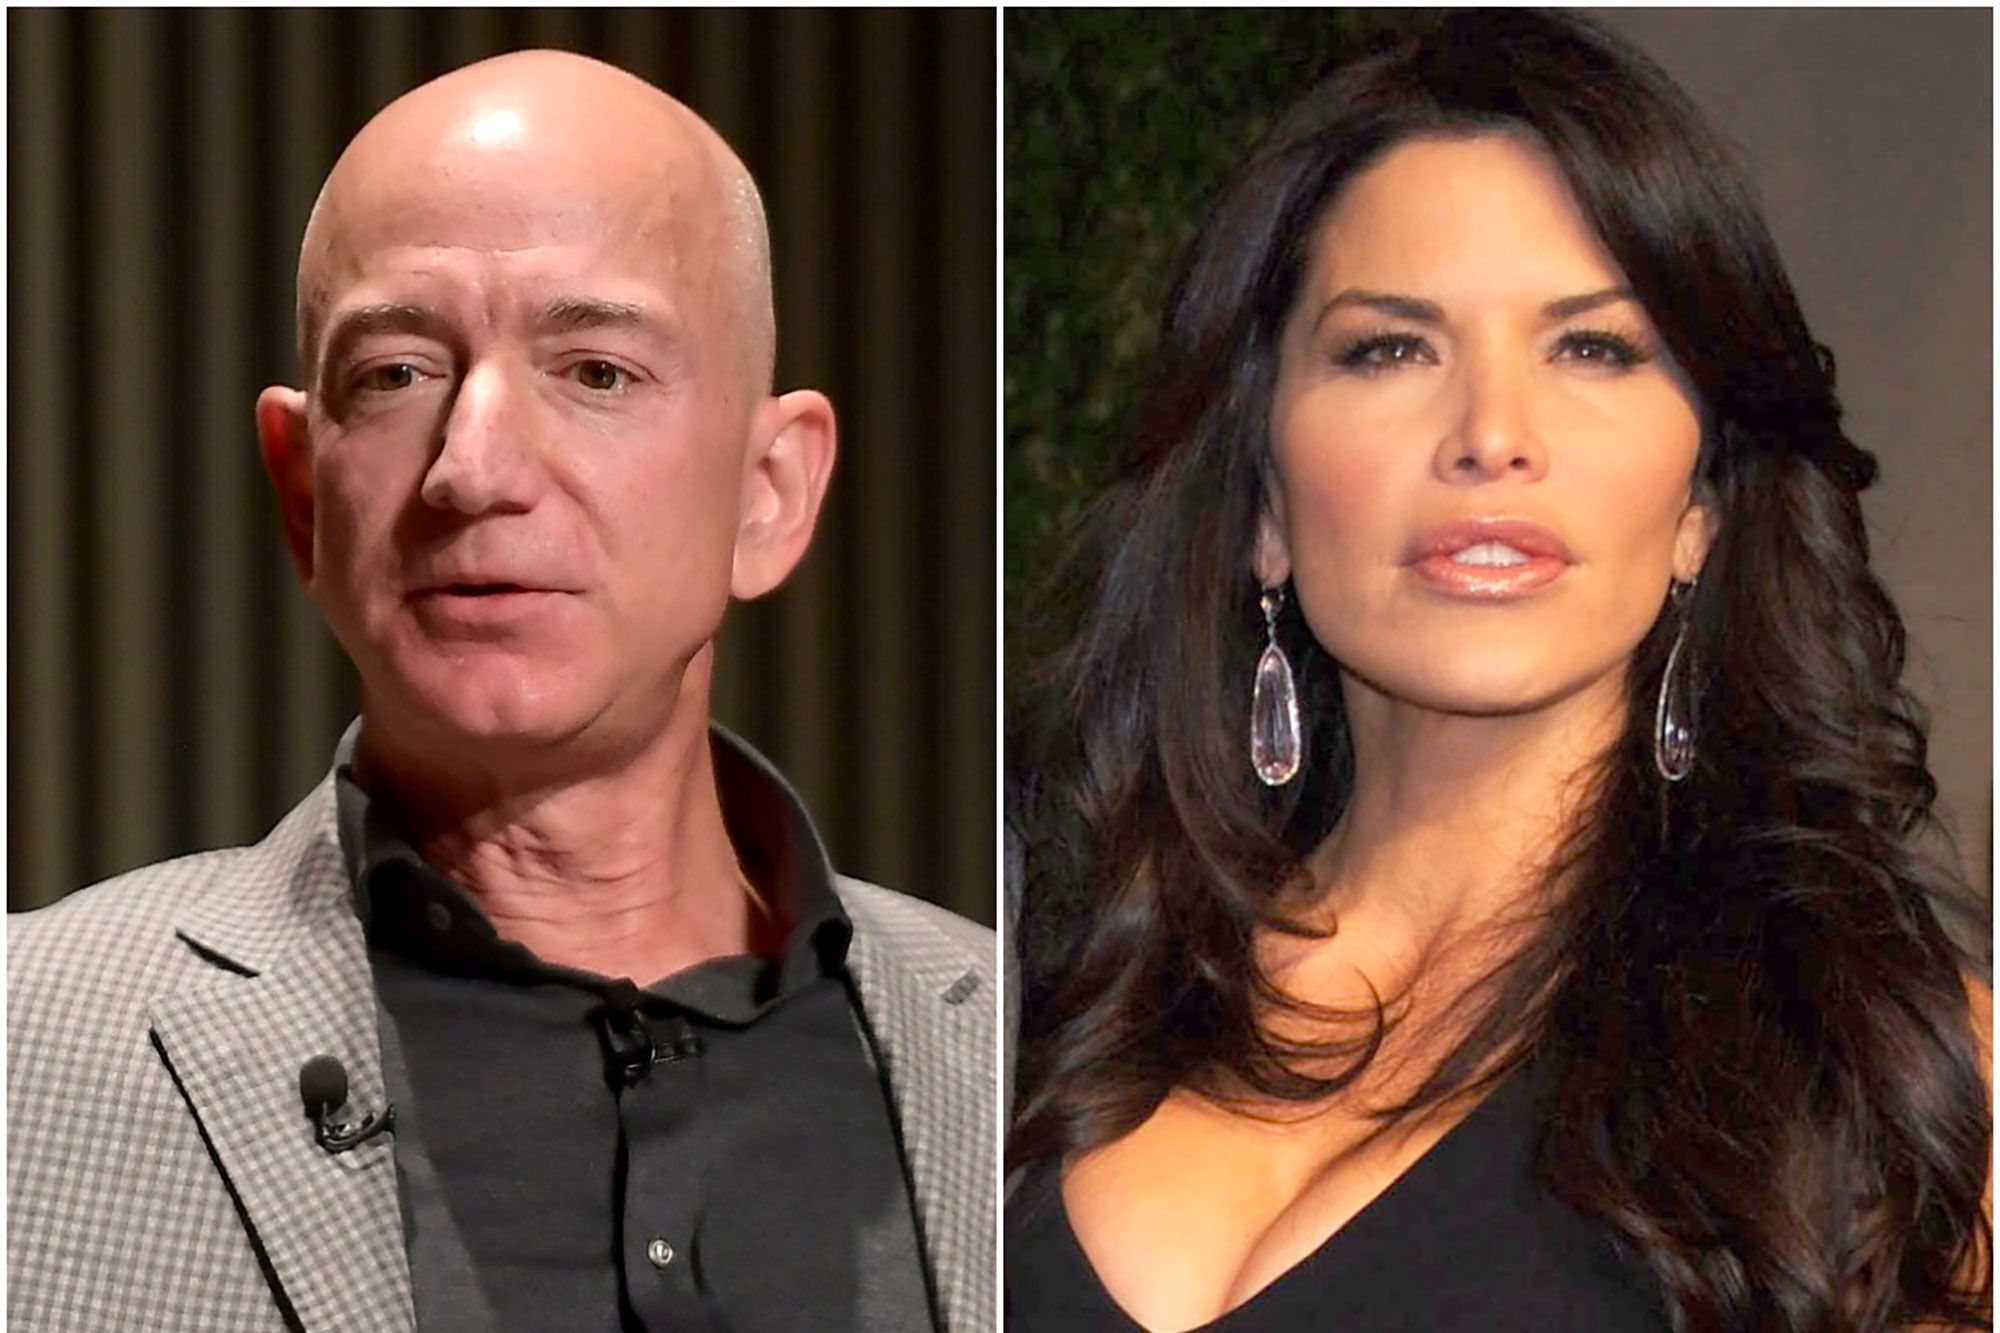 Jeff Bezos and Lauren Sanchez Partied With Lloyd Blankfein and Model Karlie Kloss Aboard Billionaire David Geffen's Superyacht